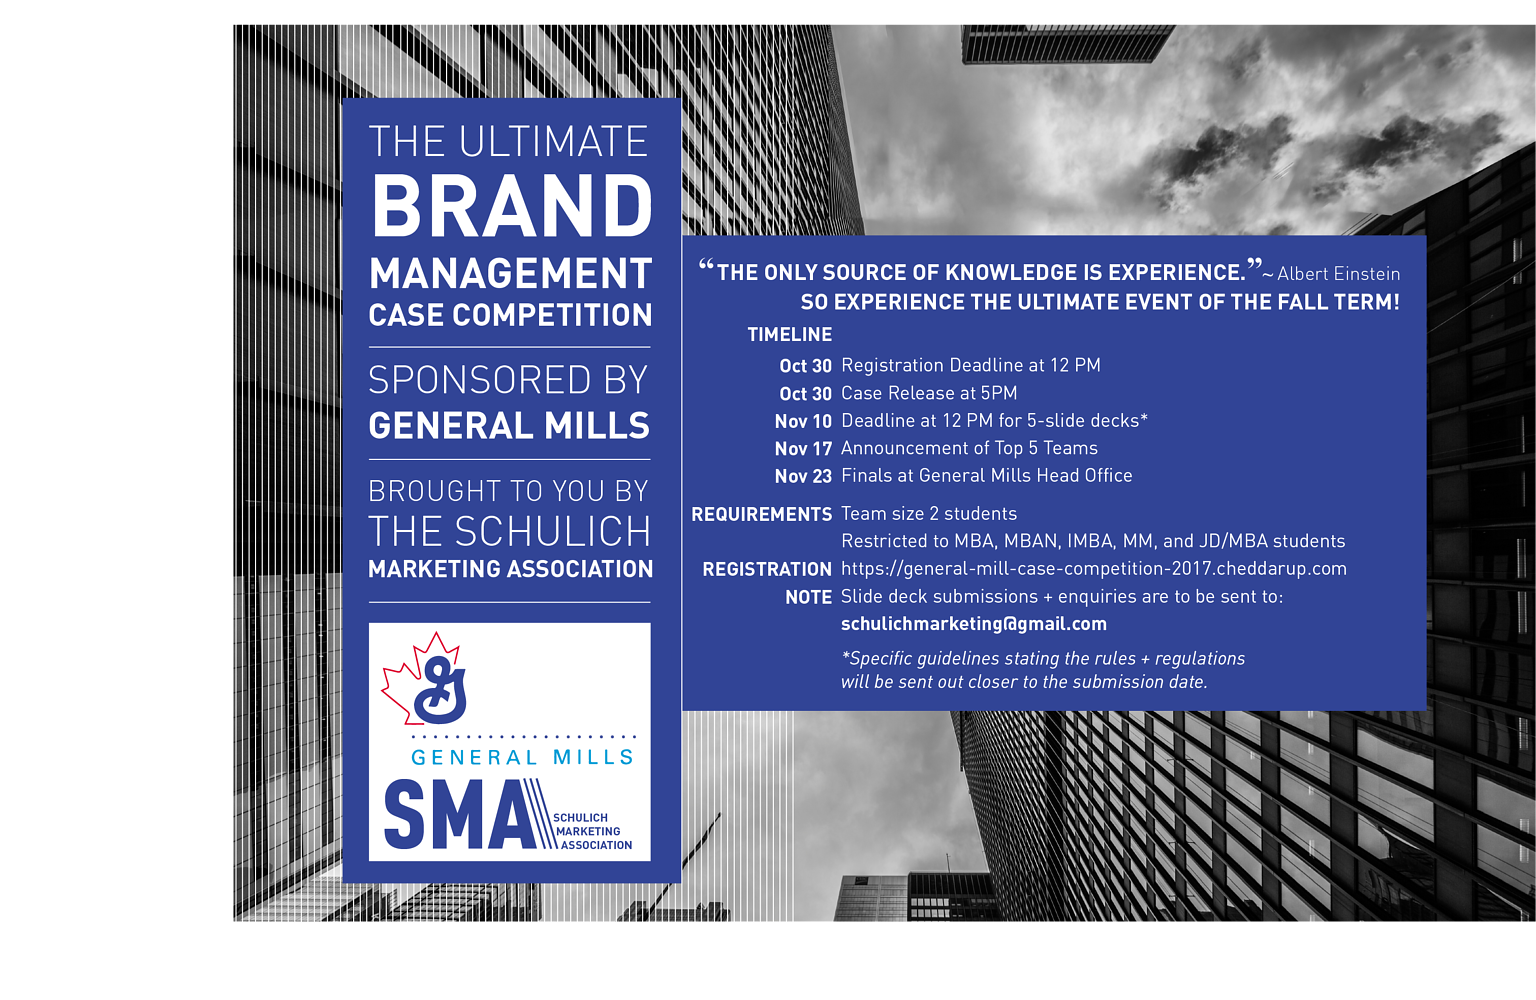 Advertisement for the General Mill Case Competition by Brooke Allen